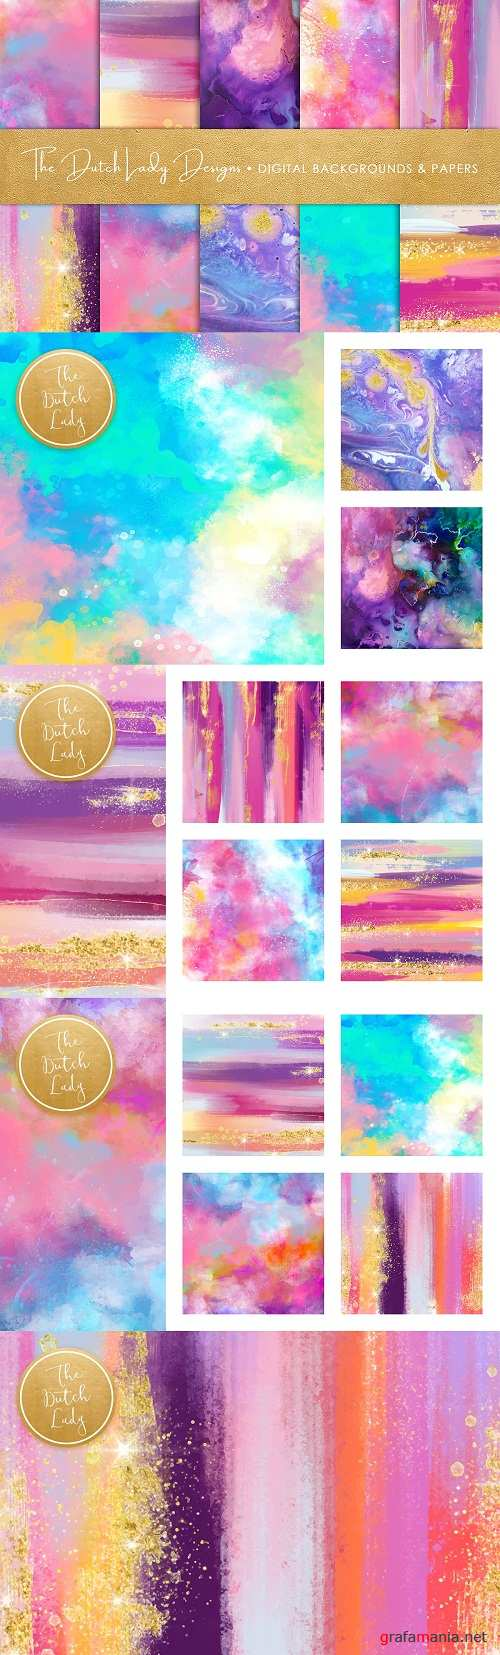 Brush Strokes & Stains Backgrounds - 3586939